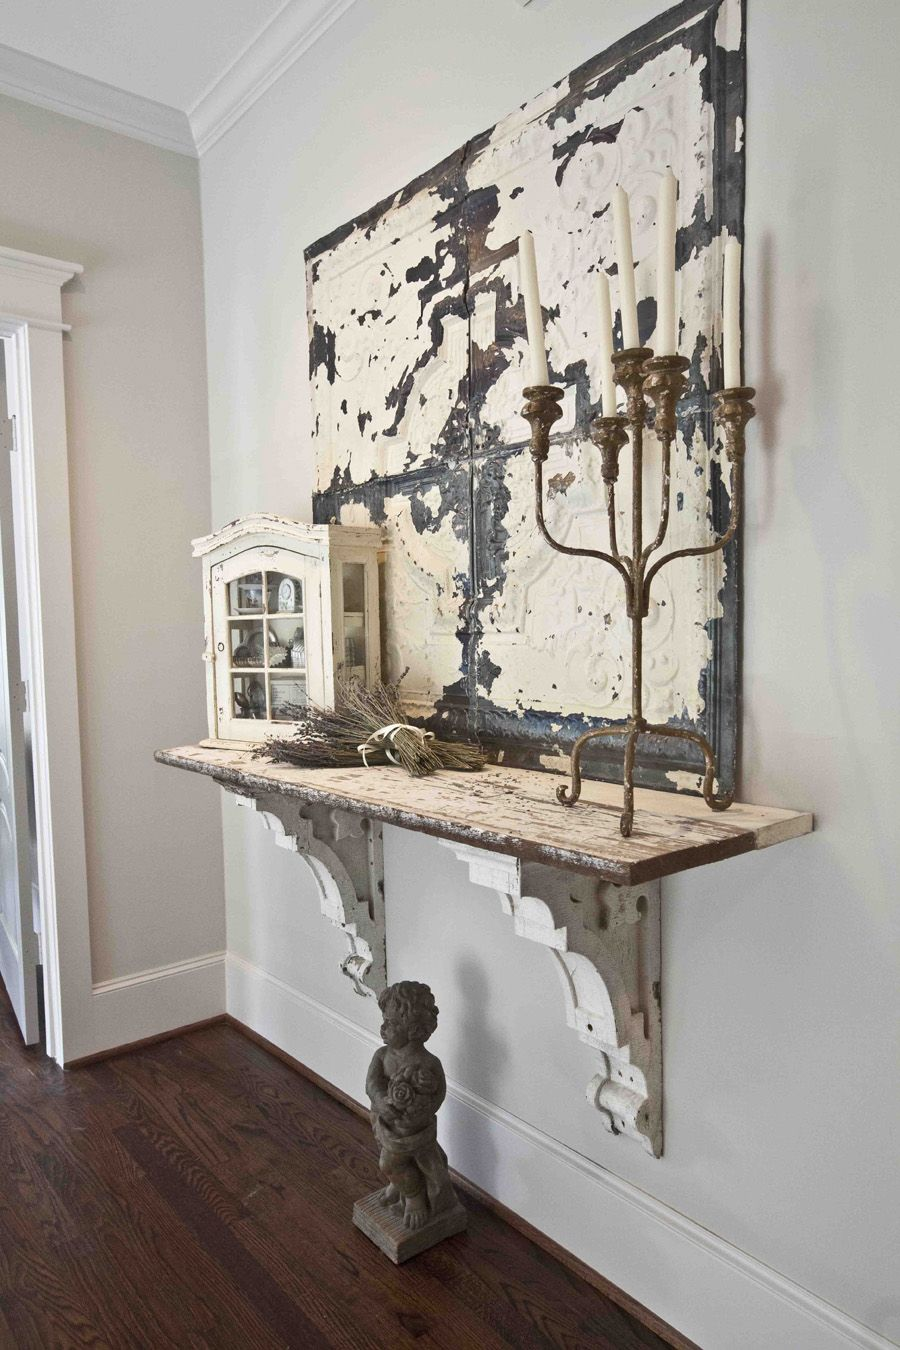 Antique Architectural Salvage Elements for a New Home - Cedar Hill Farmhouse